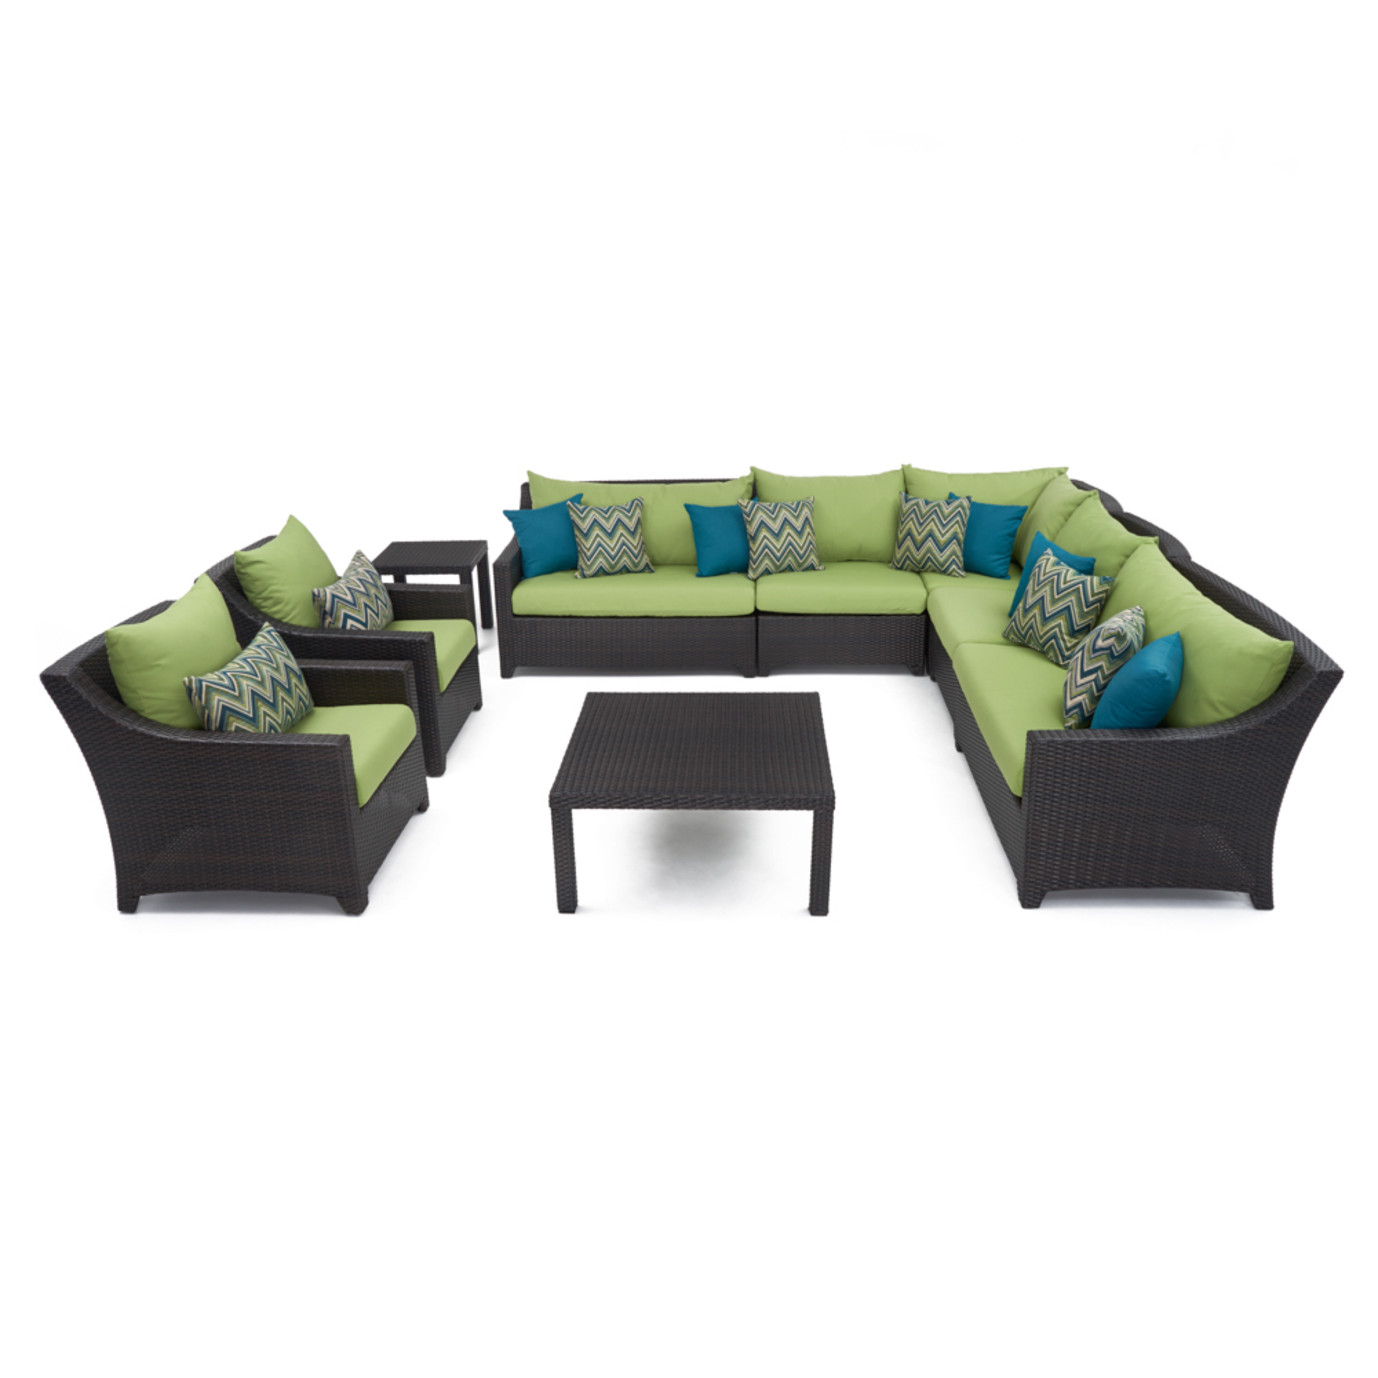 Deco™ 9pc Sectional and Club Set - Ginkgo Green